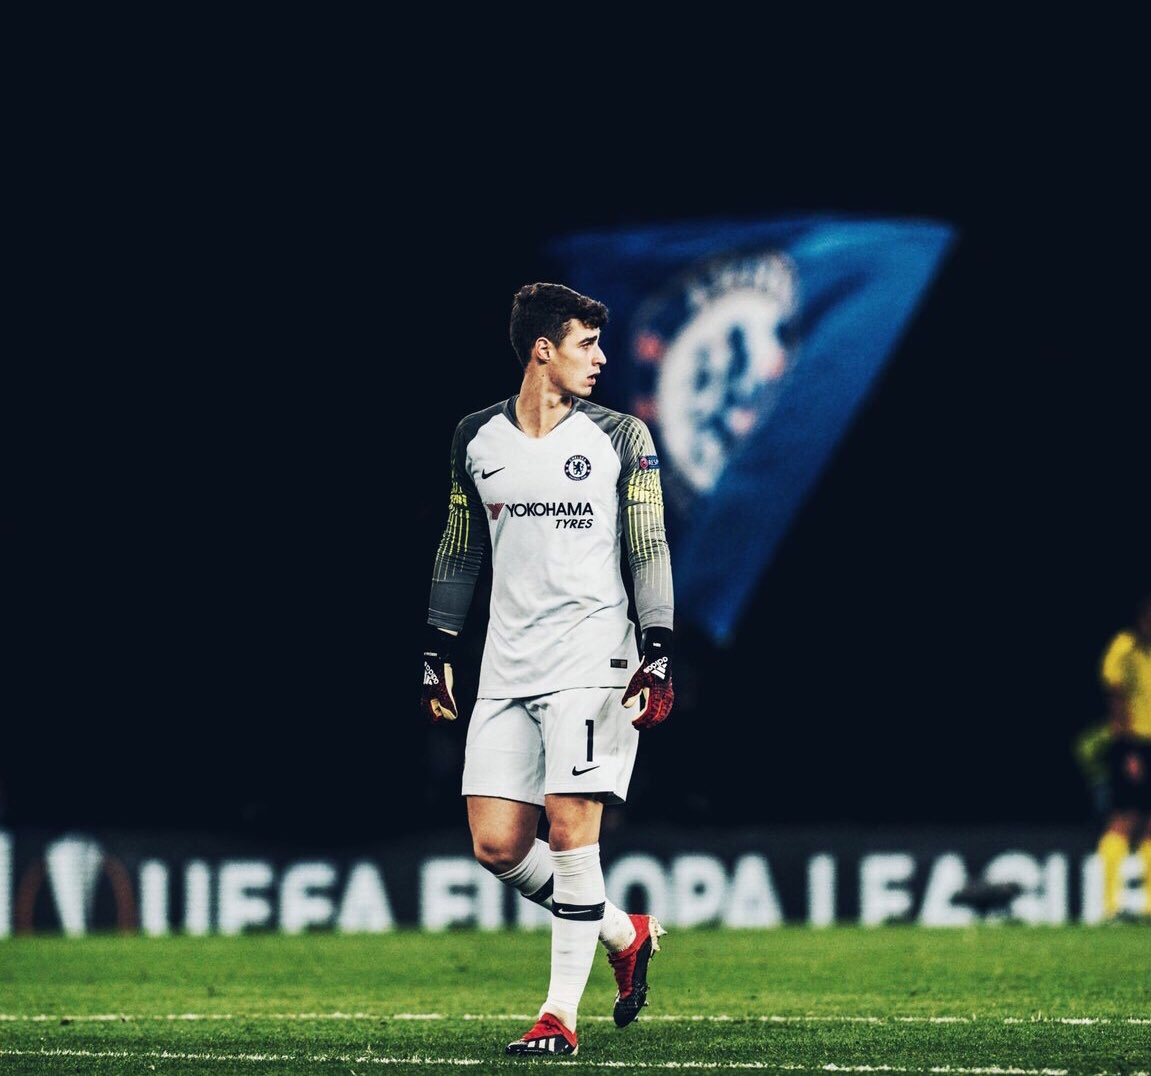 Let's take a moment out of the celebrations to talk about this guy...  Kepa Arrizabalaga, we salute you. You are everything we wanted Courtois to be 💙